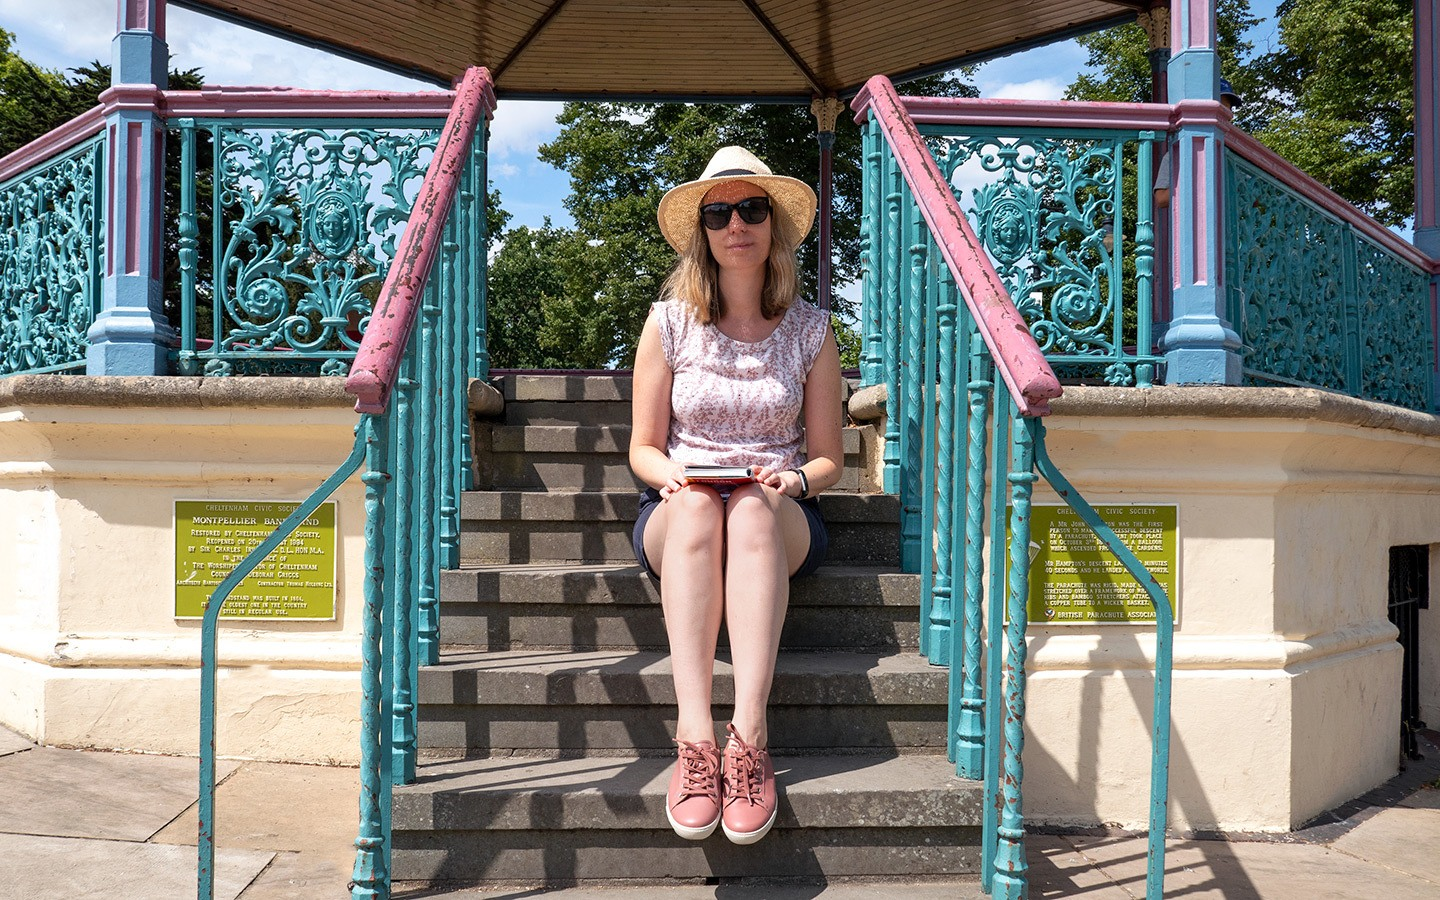 On the bandstand in Cheltenham